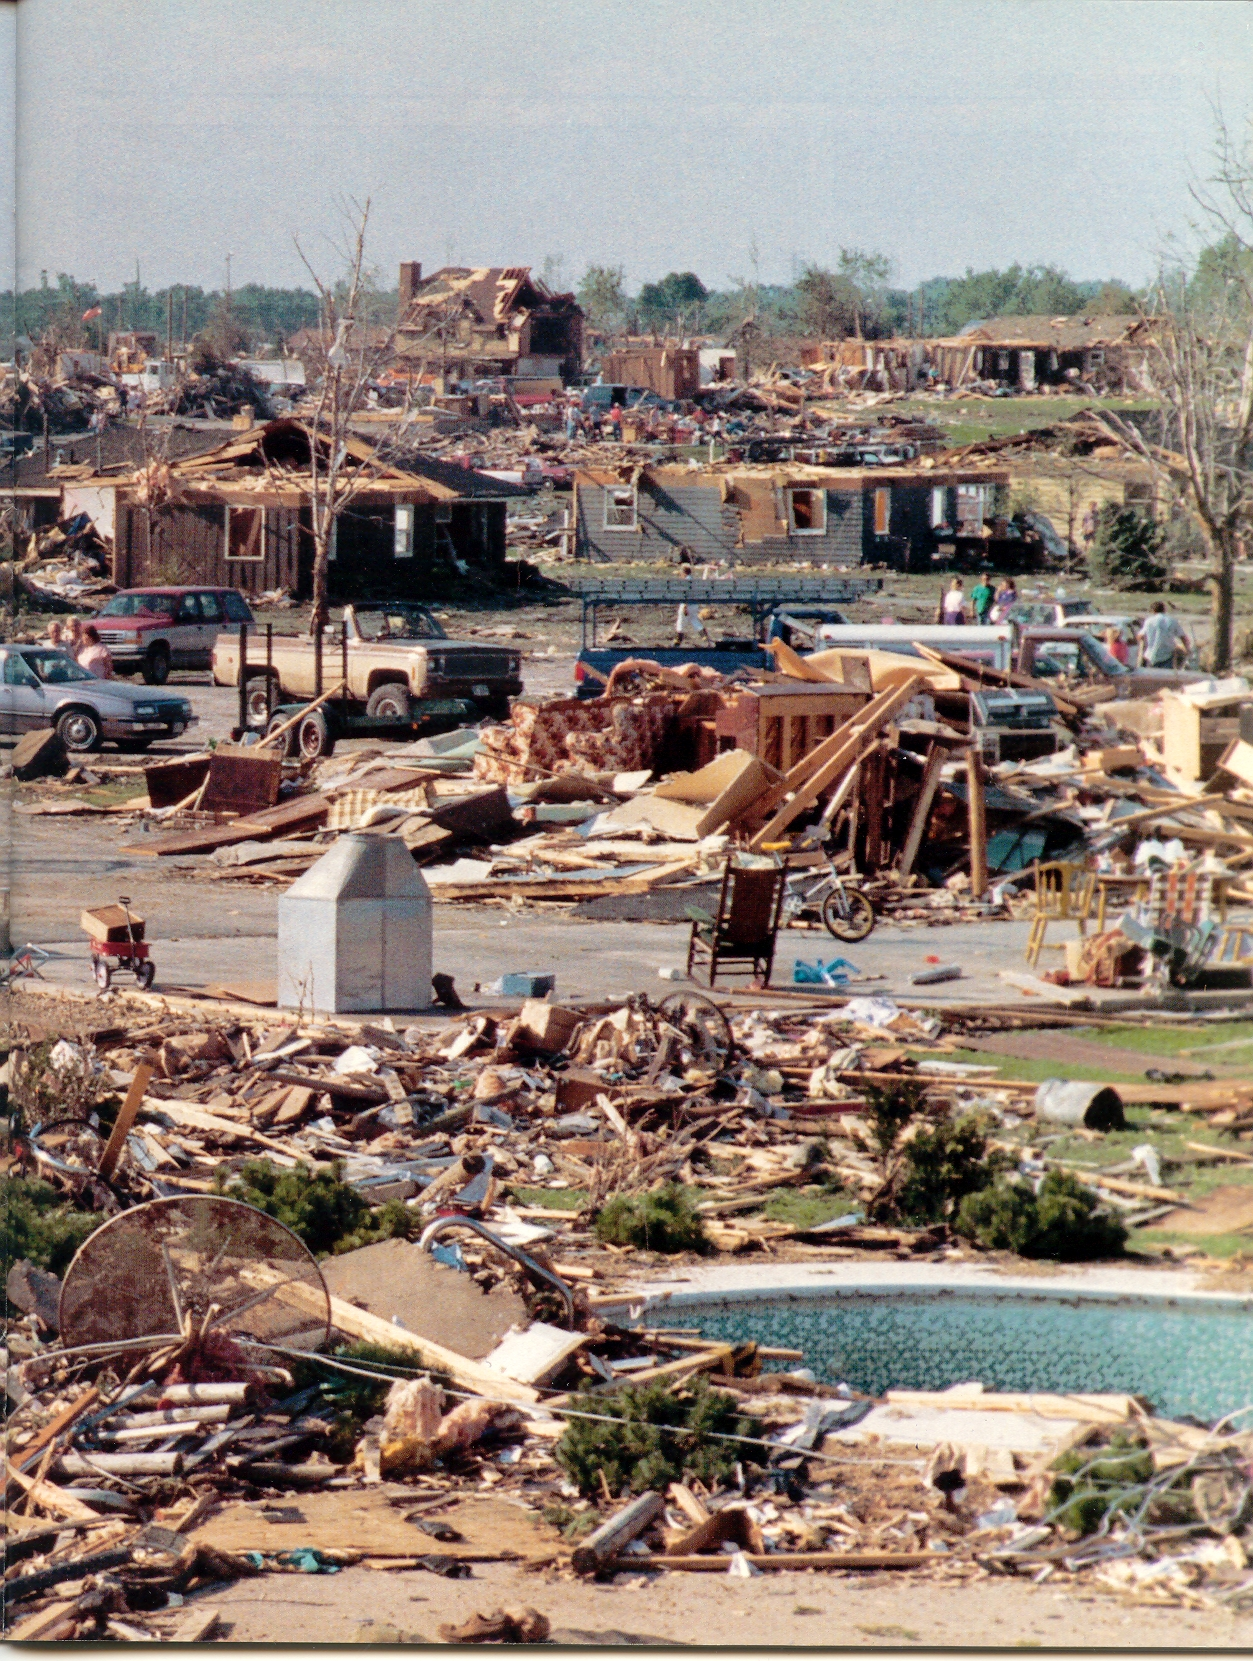 The 31st Anniversary of the Strongest August Tornado on Record in Plainfield, Illinois